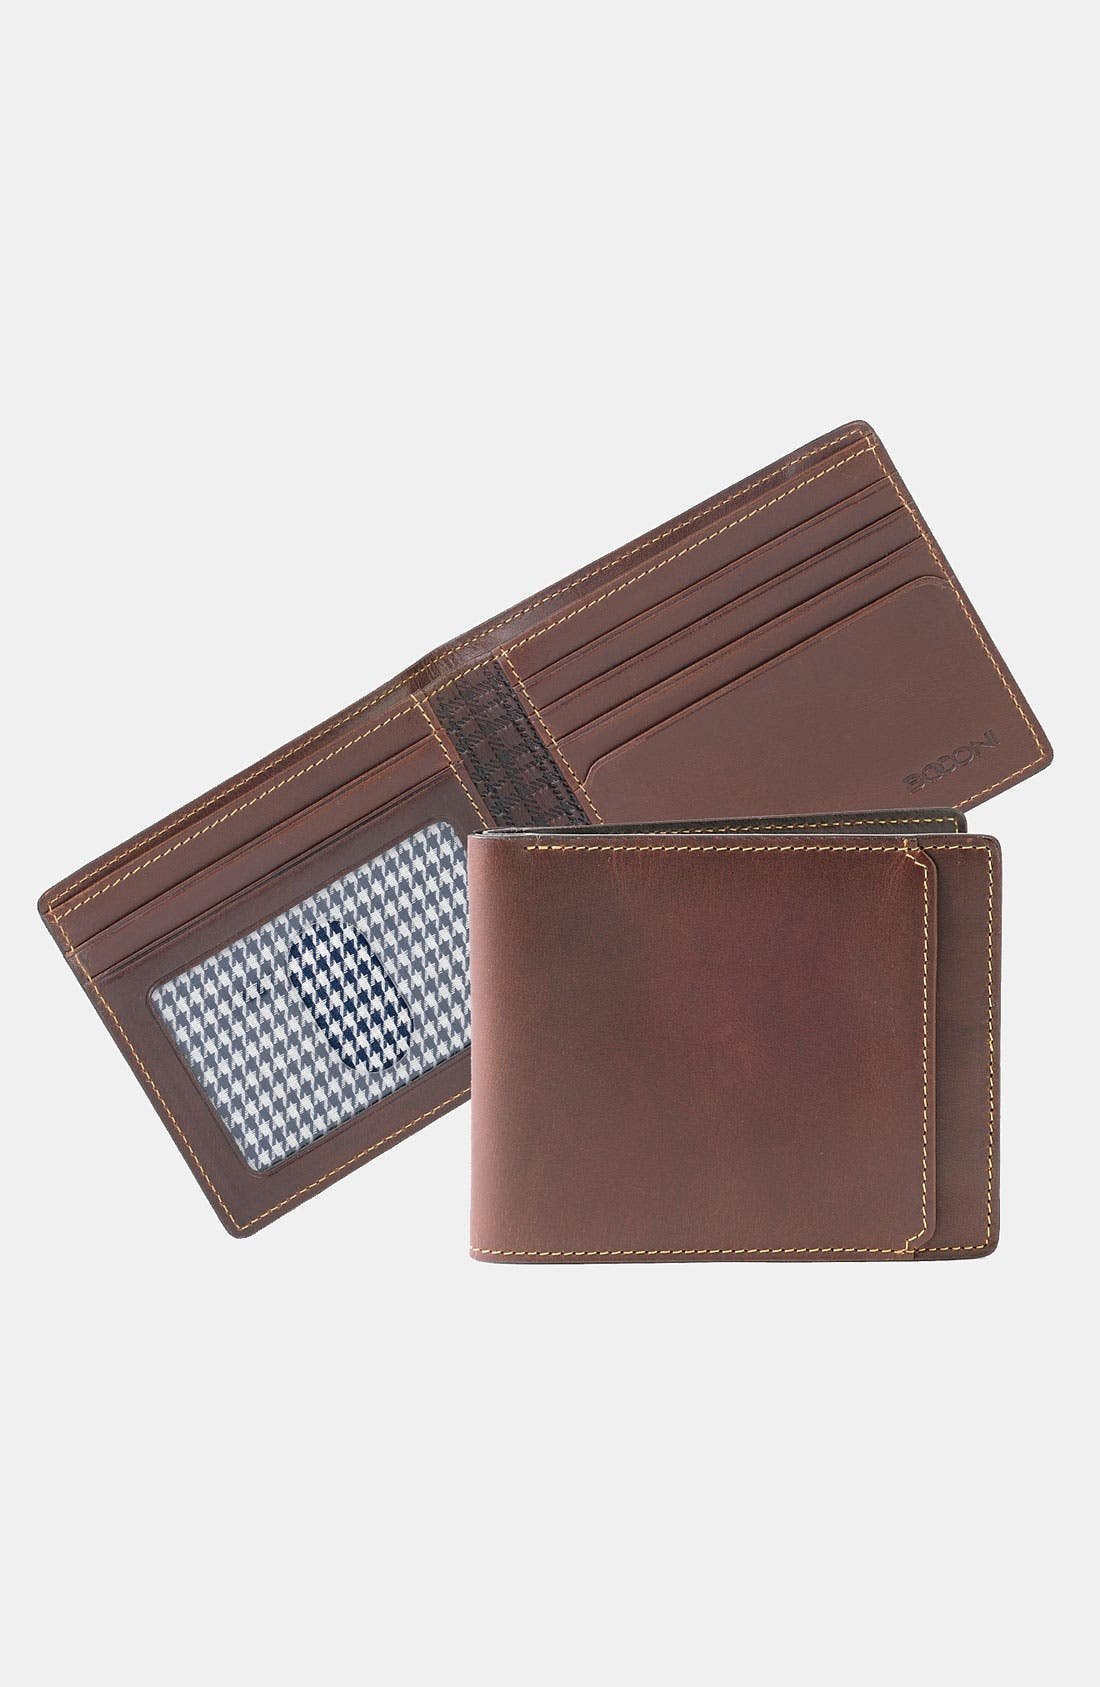 'Bryant' RFID Blocker Slimfold Wallet,                             Alternate thumbnail 3, color,                             ANTIQUE MAHOGANY